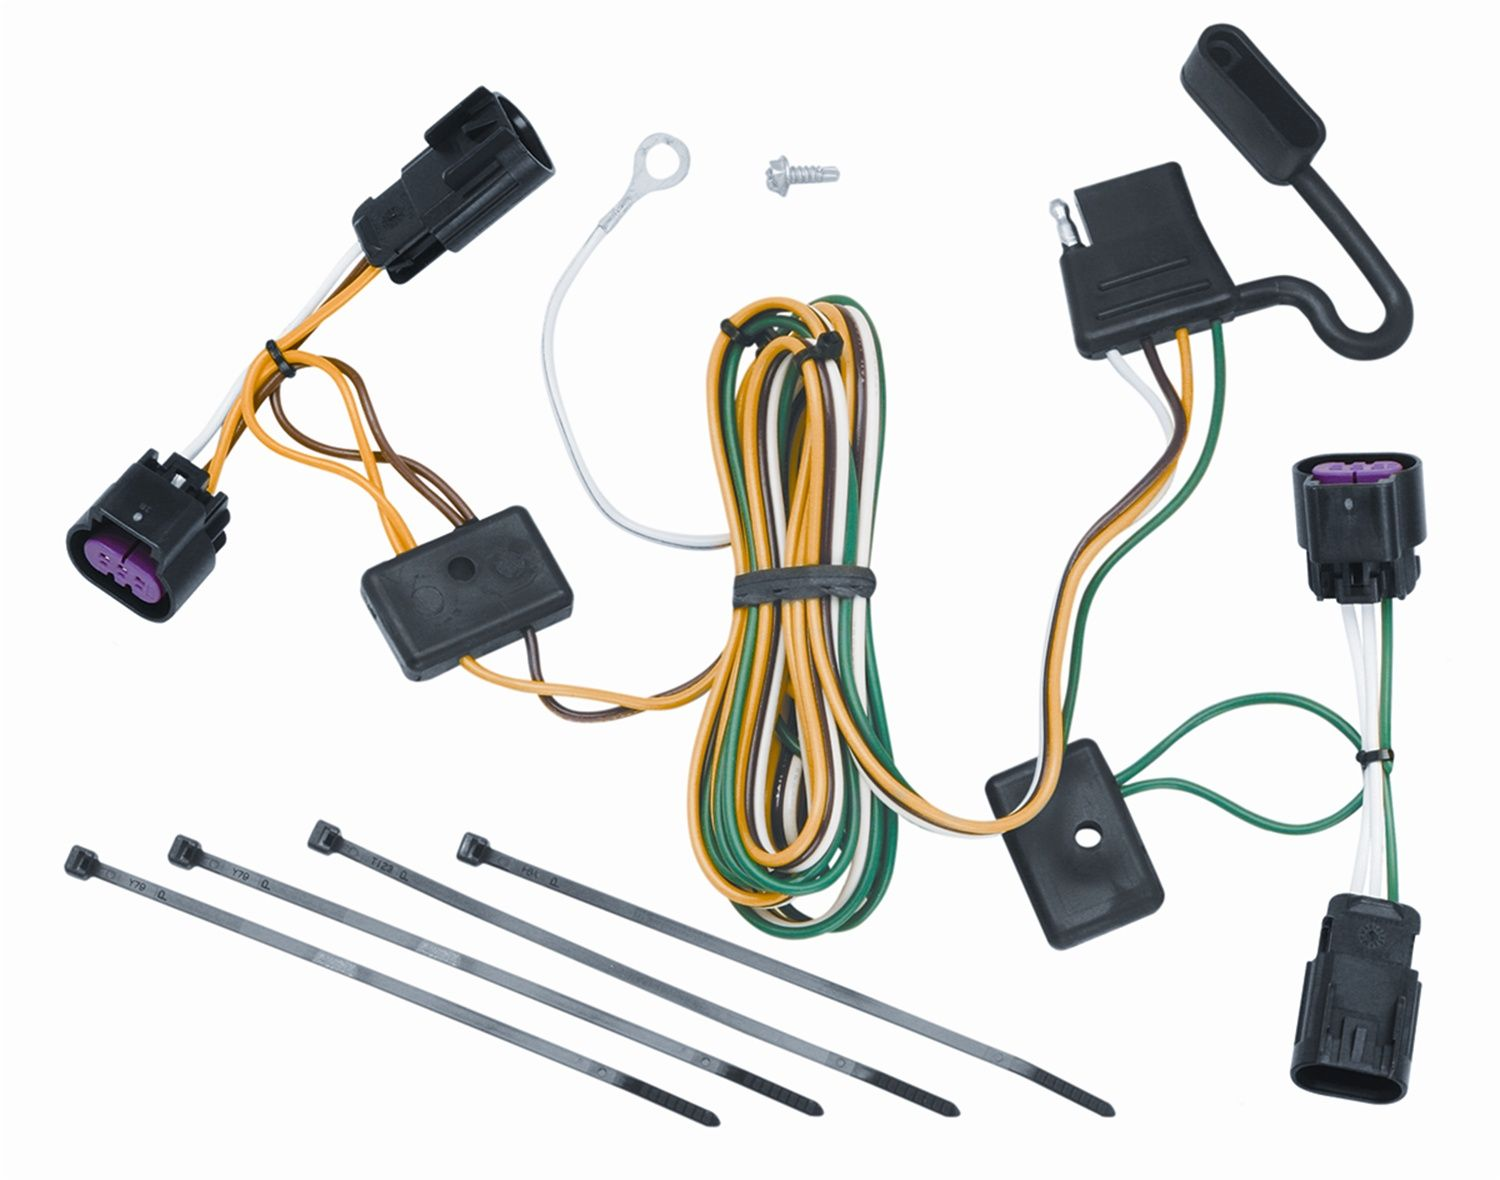 trailer hitch wiring 09 12 chevy traverse 08 12 malibu 08 12 buick [ 1500 x 1180 Pixel ]